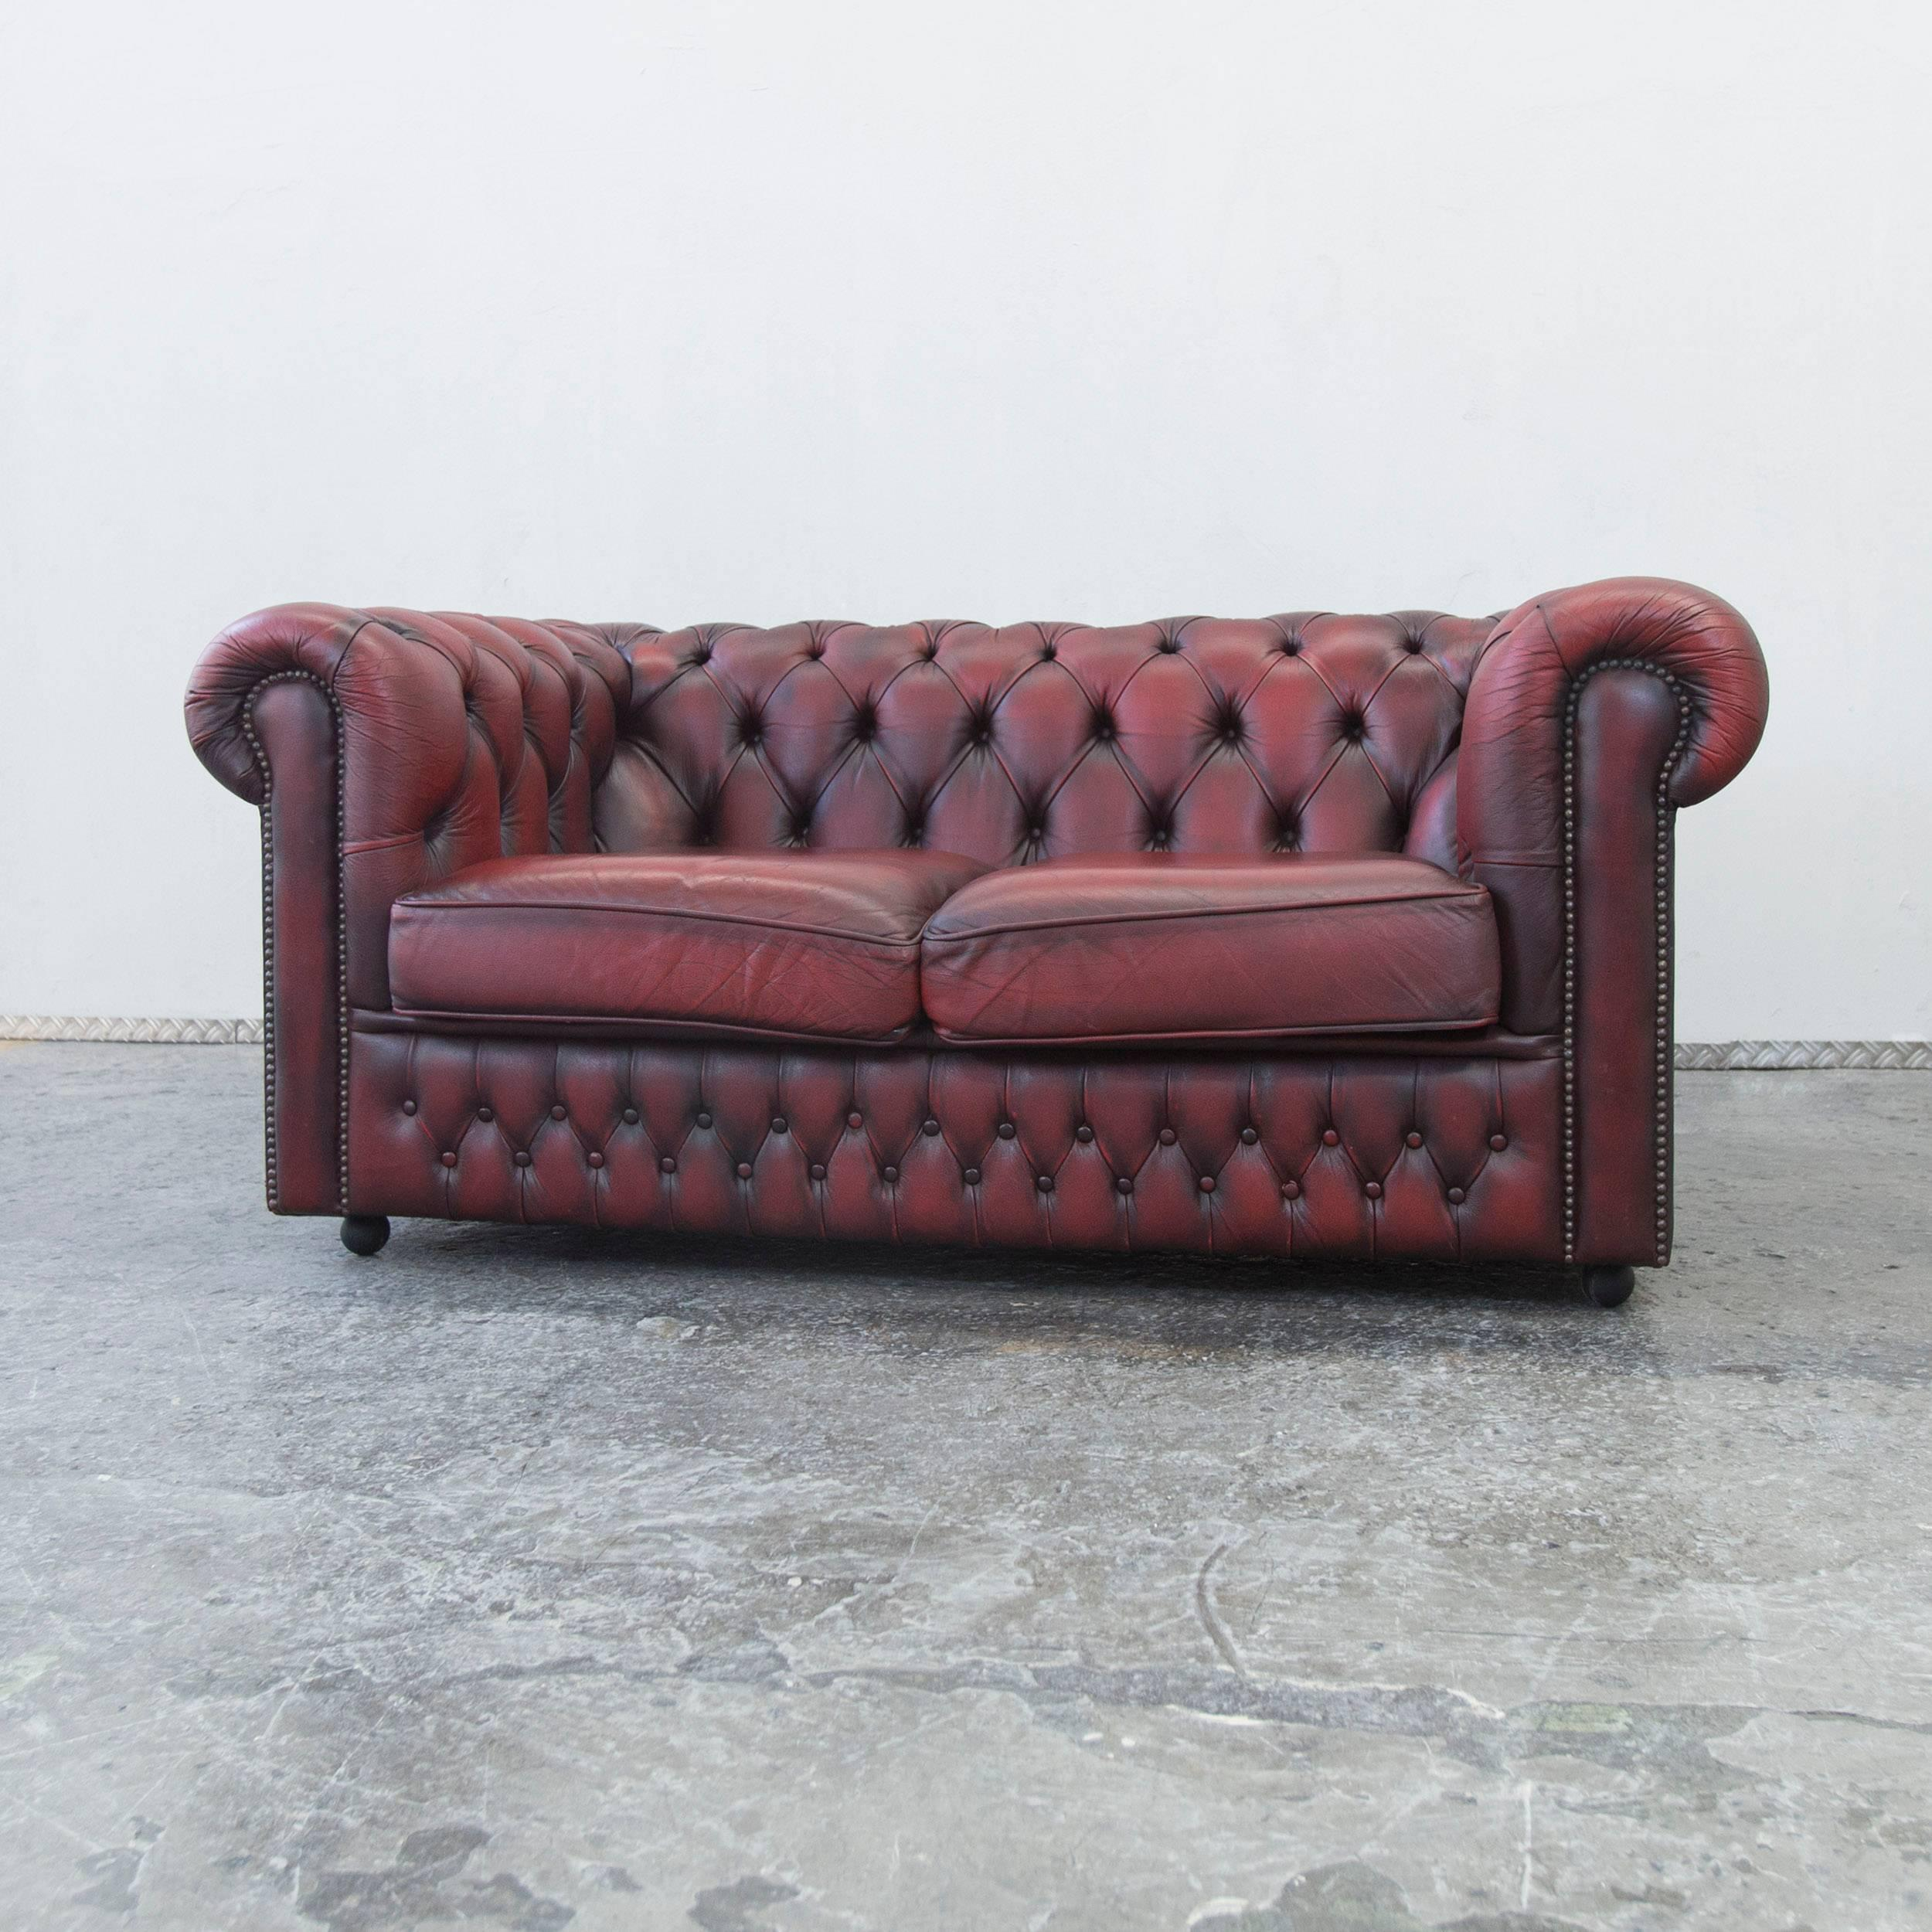 lounge delightful full ideas sofa tables craigslist kroehler of from sofas couch sale the dimensionsvintage pictures couches sleeper barcalounger and vintage loveseat size beds mattress for